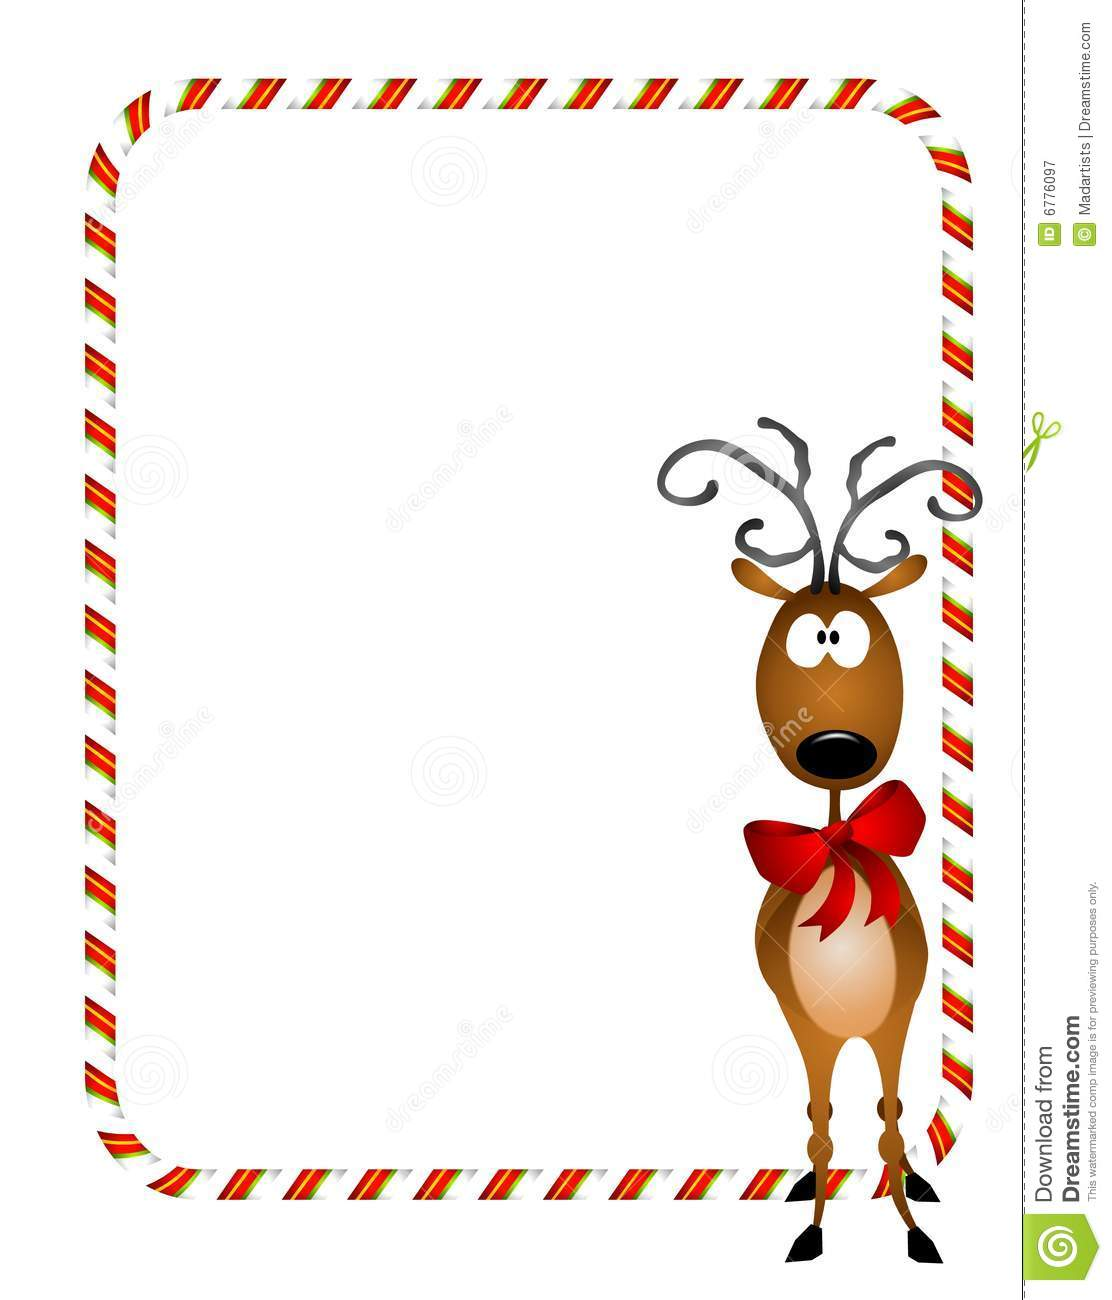 hight resolution of a bacckground illustration featuring a reindeer wearing a red bow with candy cane border or frame